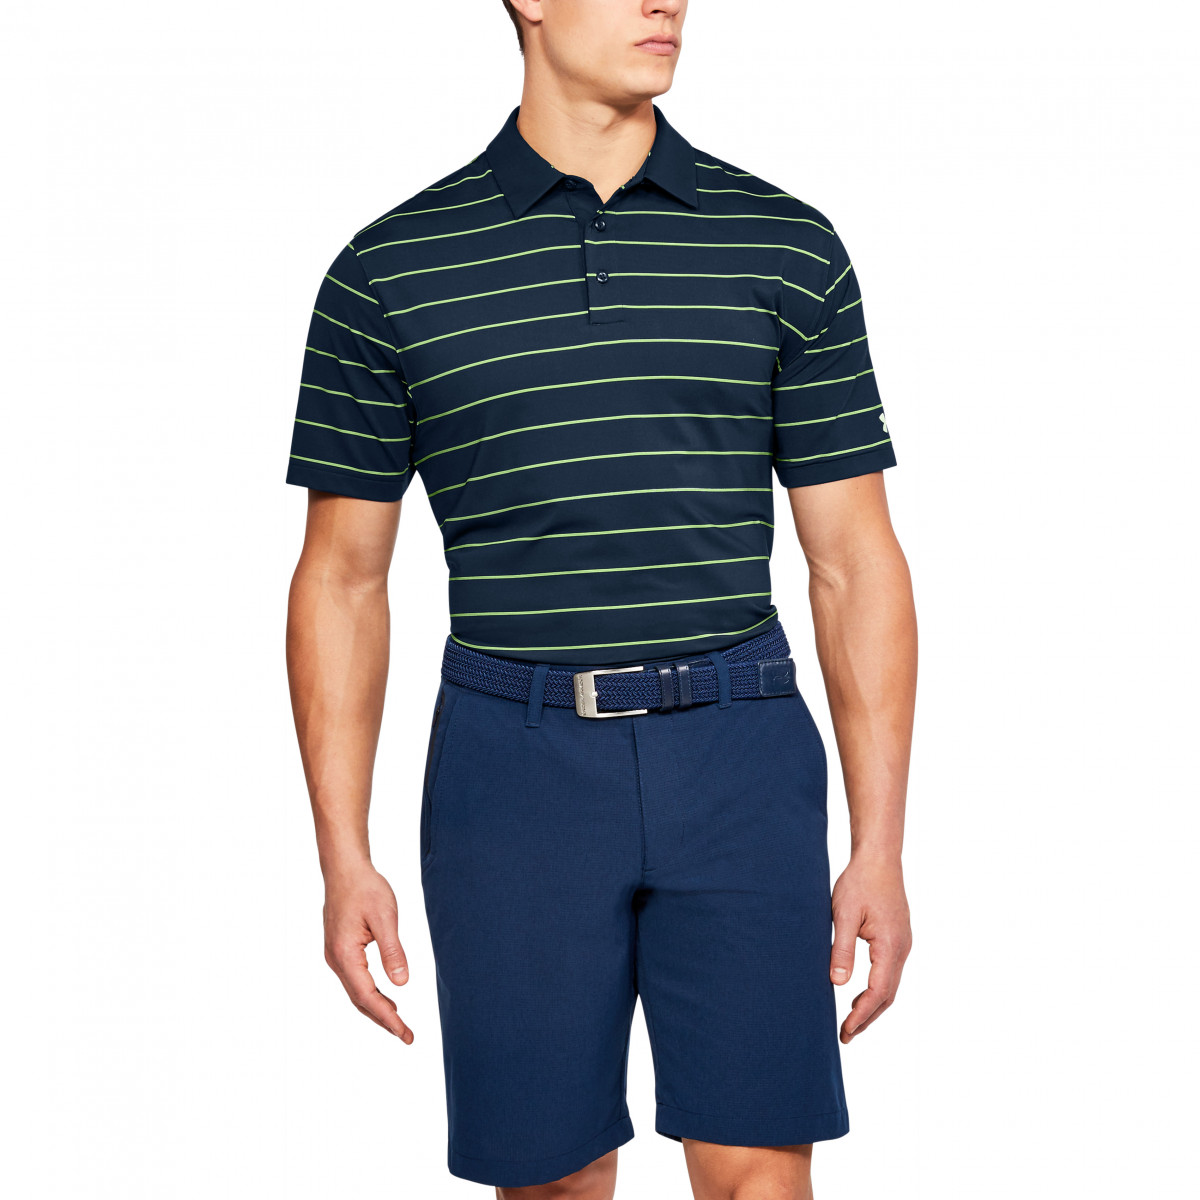 d9270511 Under Armour Mens Crestable Playoff Golf Polo Shirt